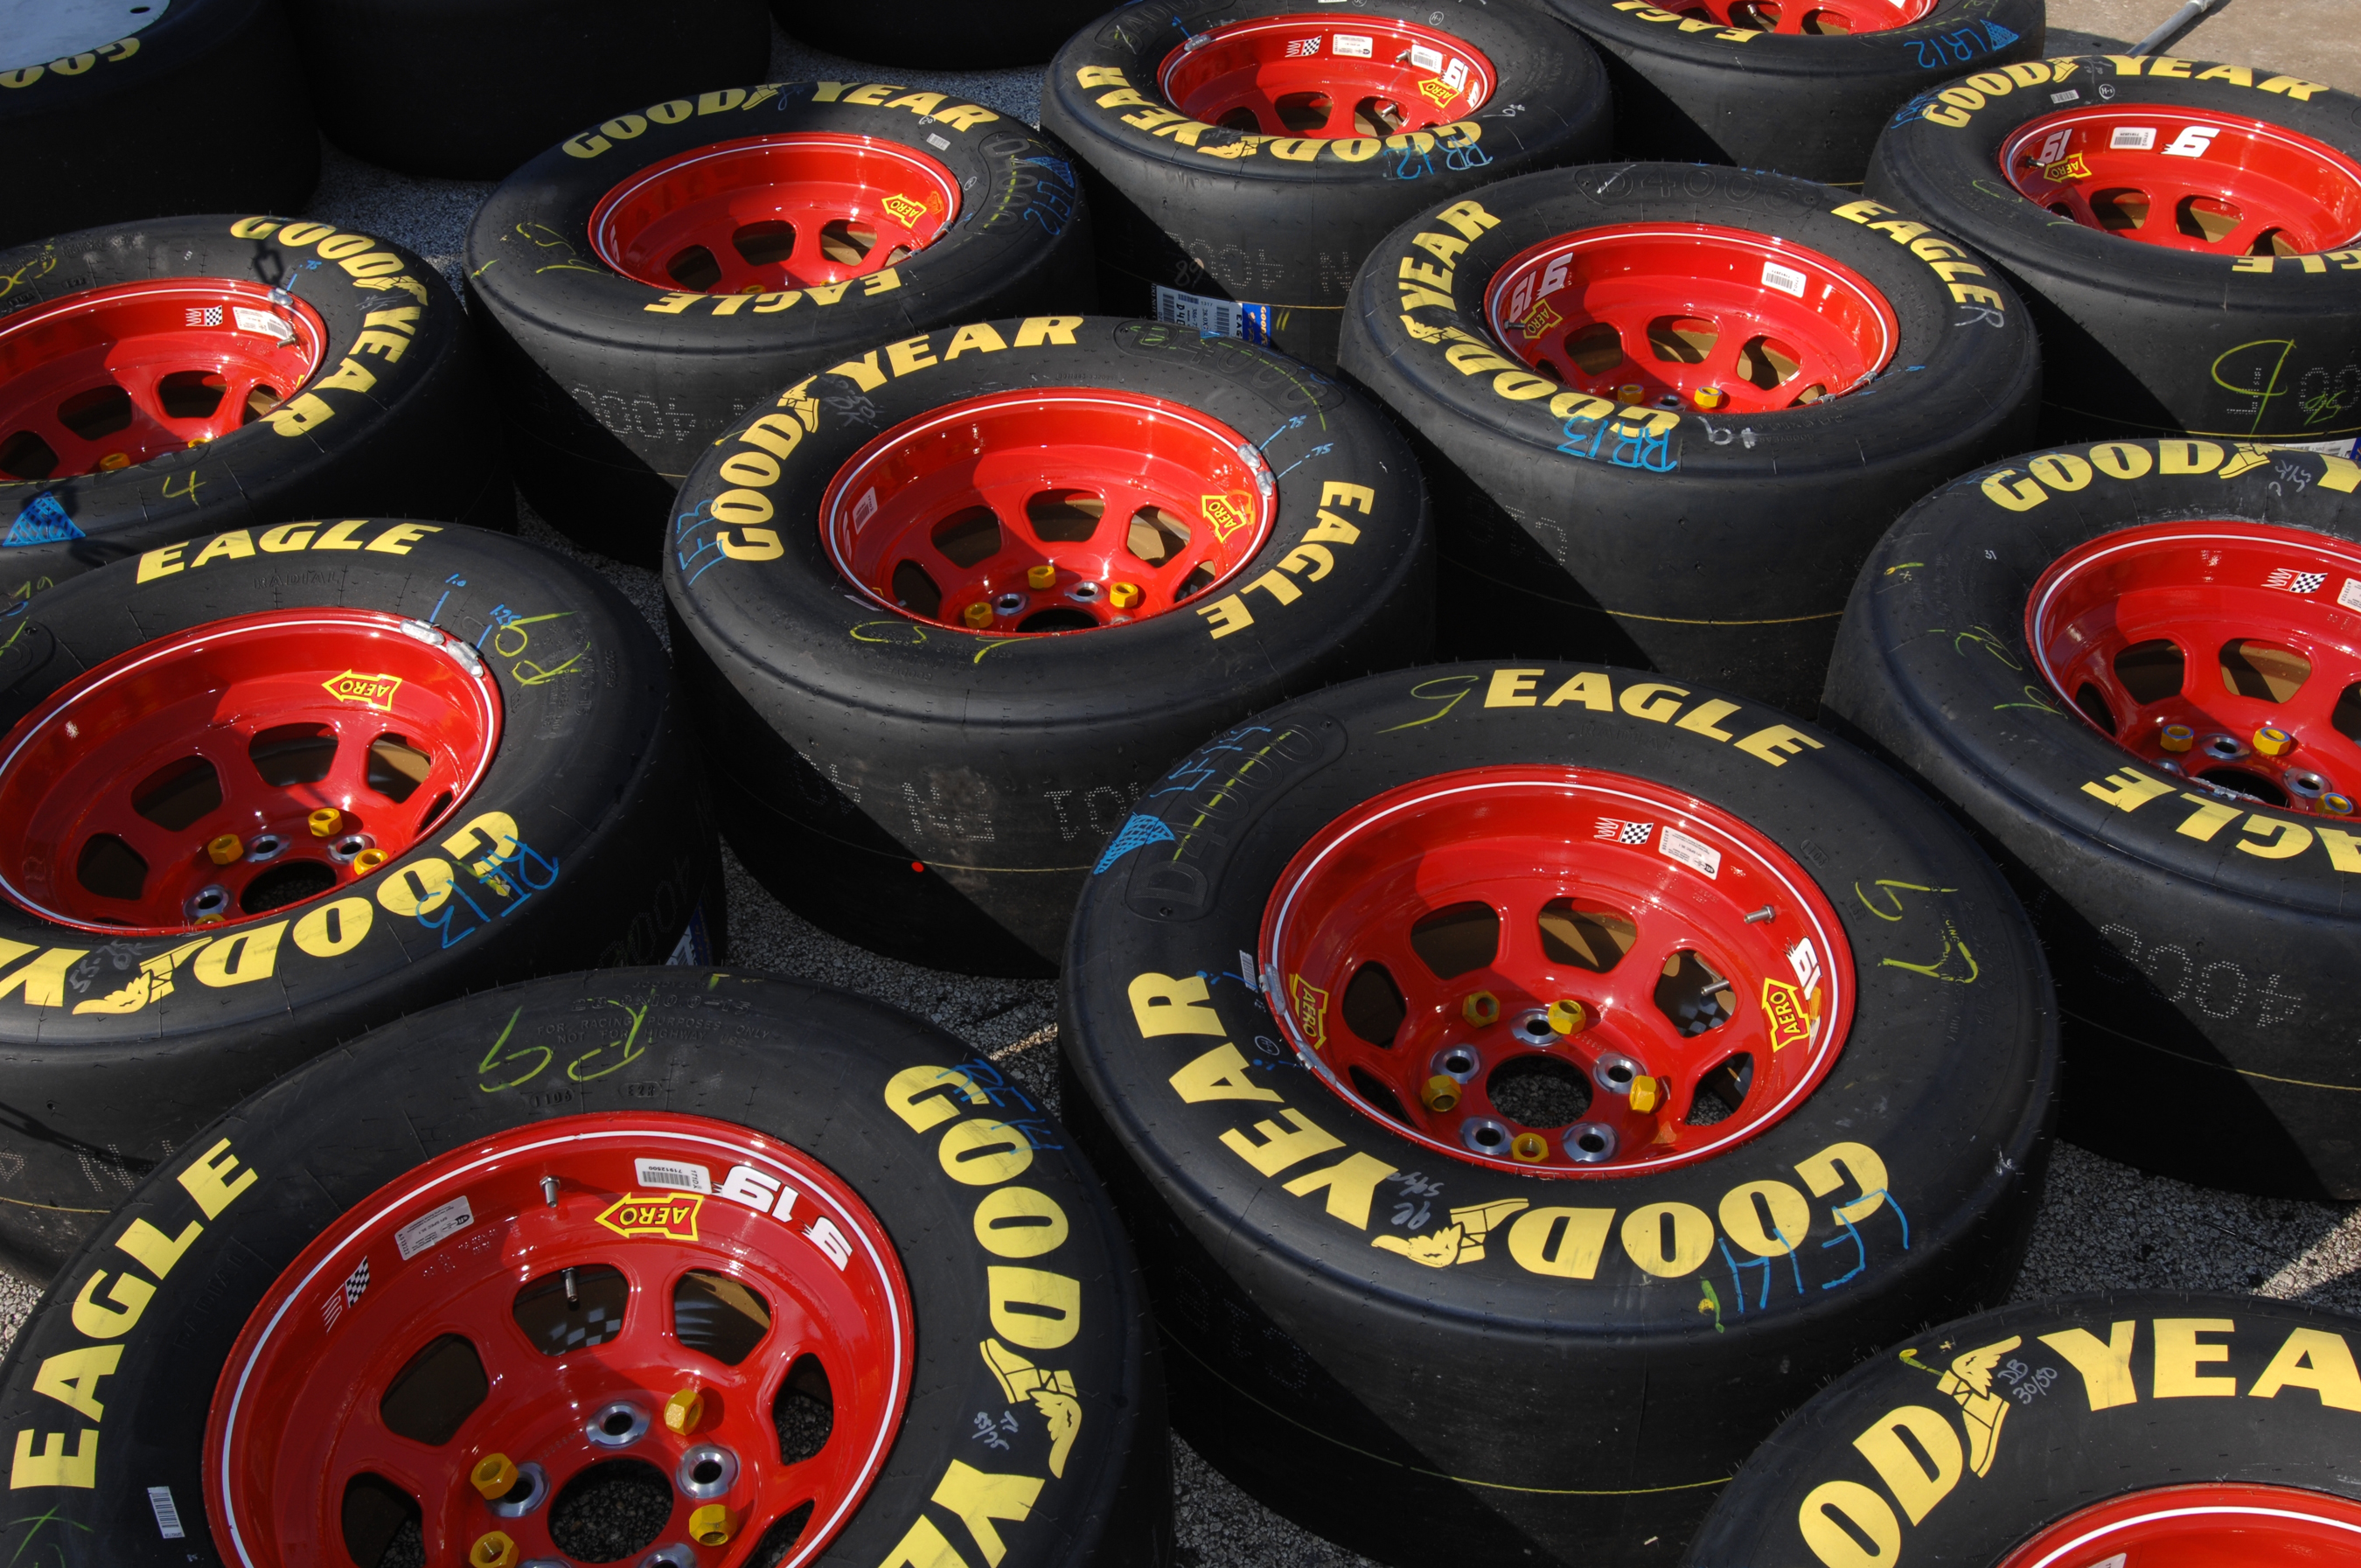 54402-NASCAR-Pic-3-rows-of-tires-original.jpg?1330018898